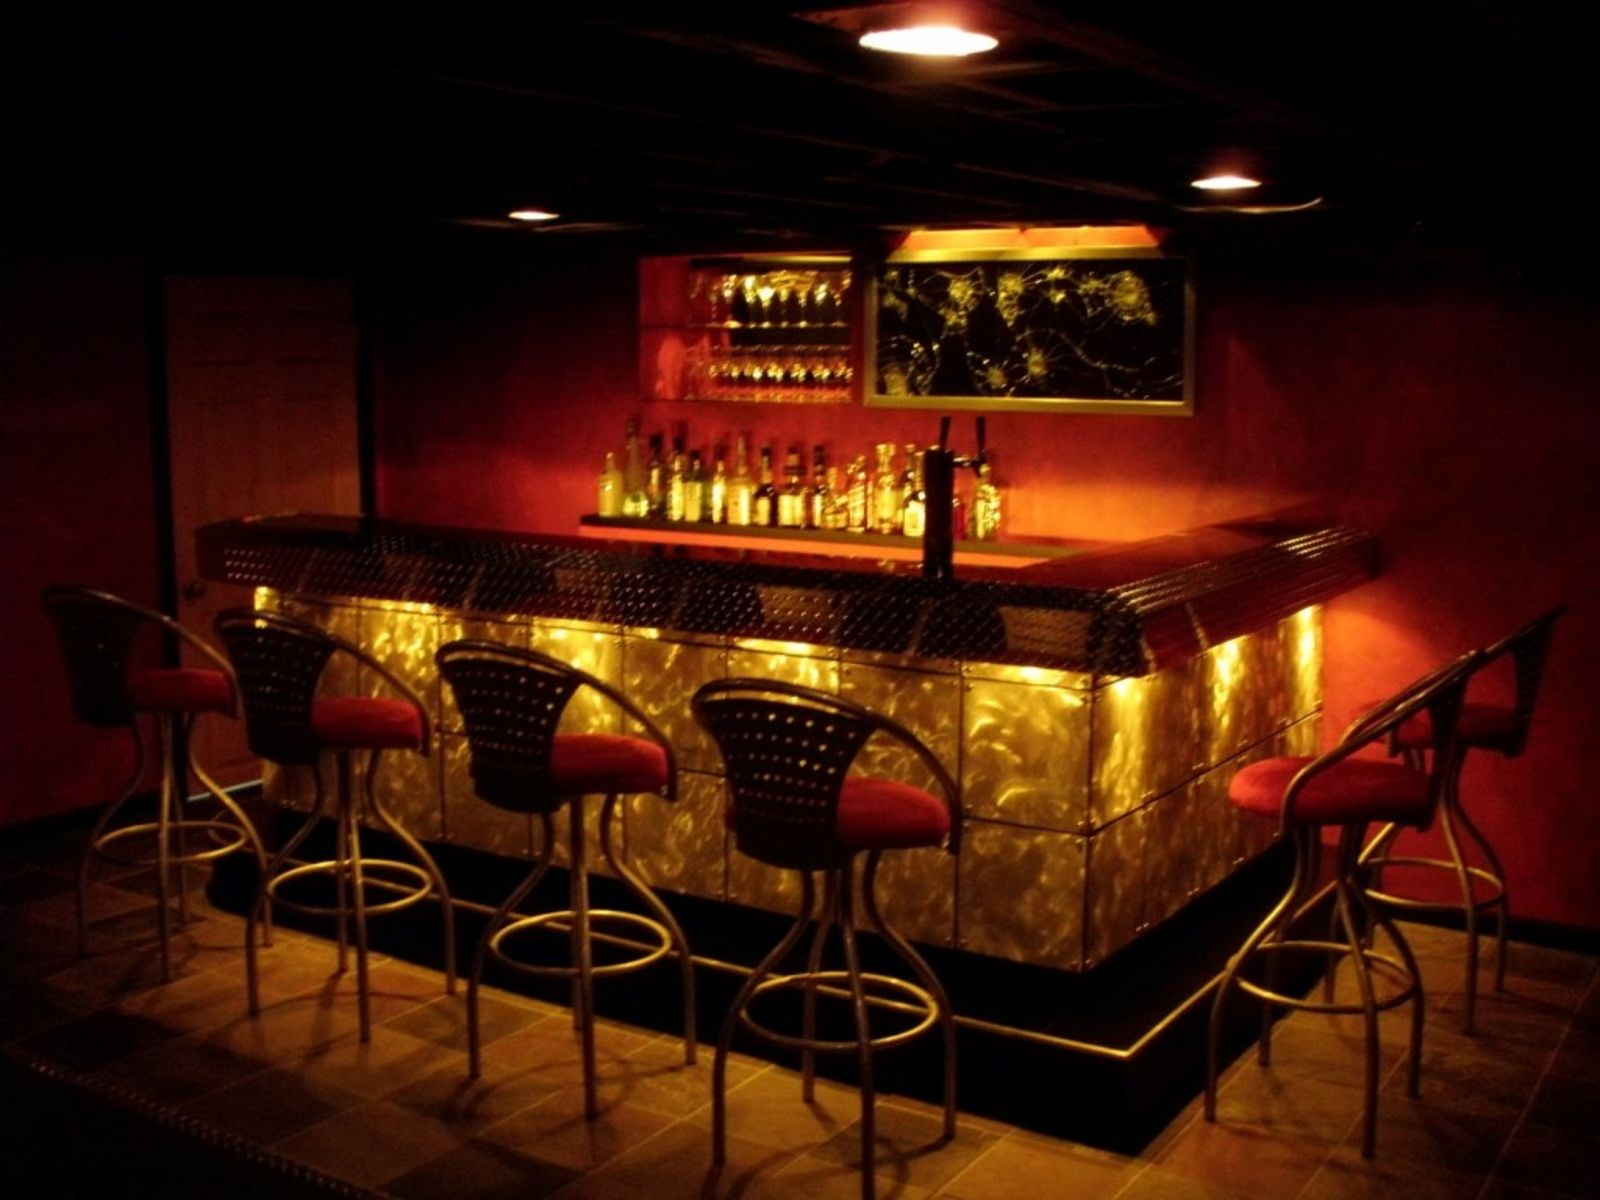 Home Bar Idea For The Basement? Love The Basement Idea!